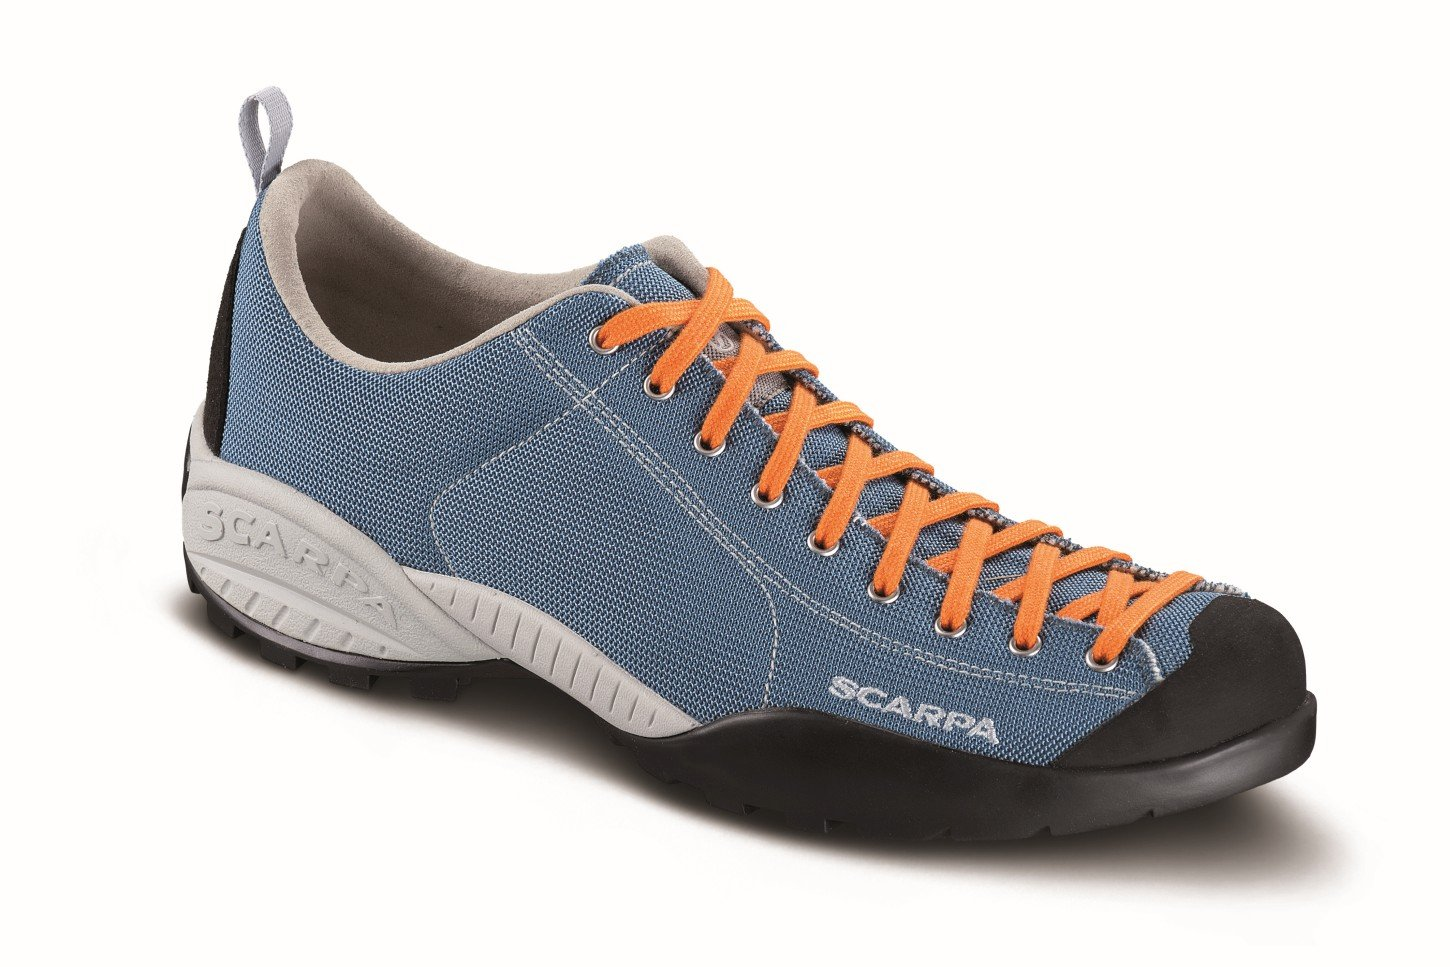 Scarpa Schuhe Mojito Fresh  7 UK / 41 EUR|ocean/orange pop